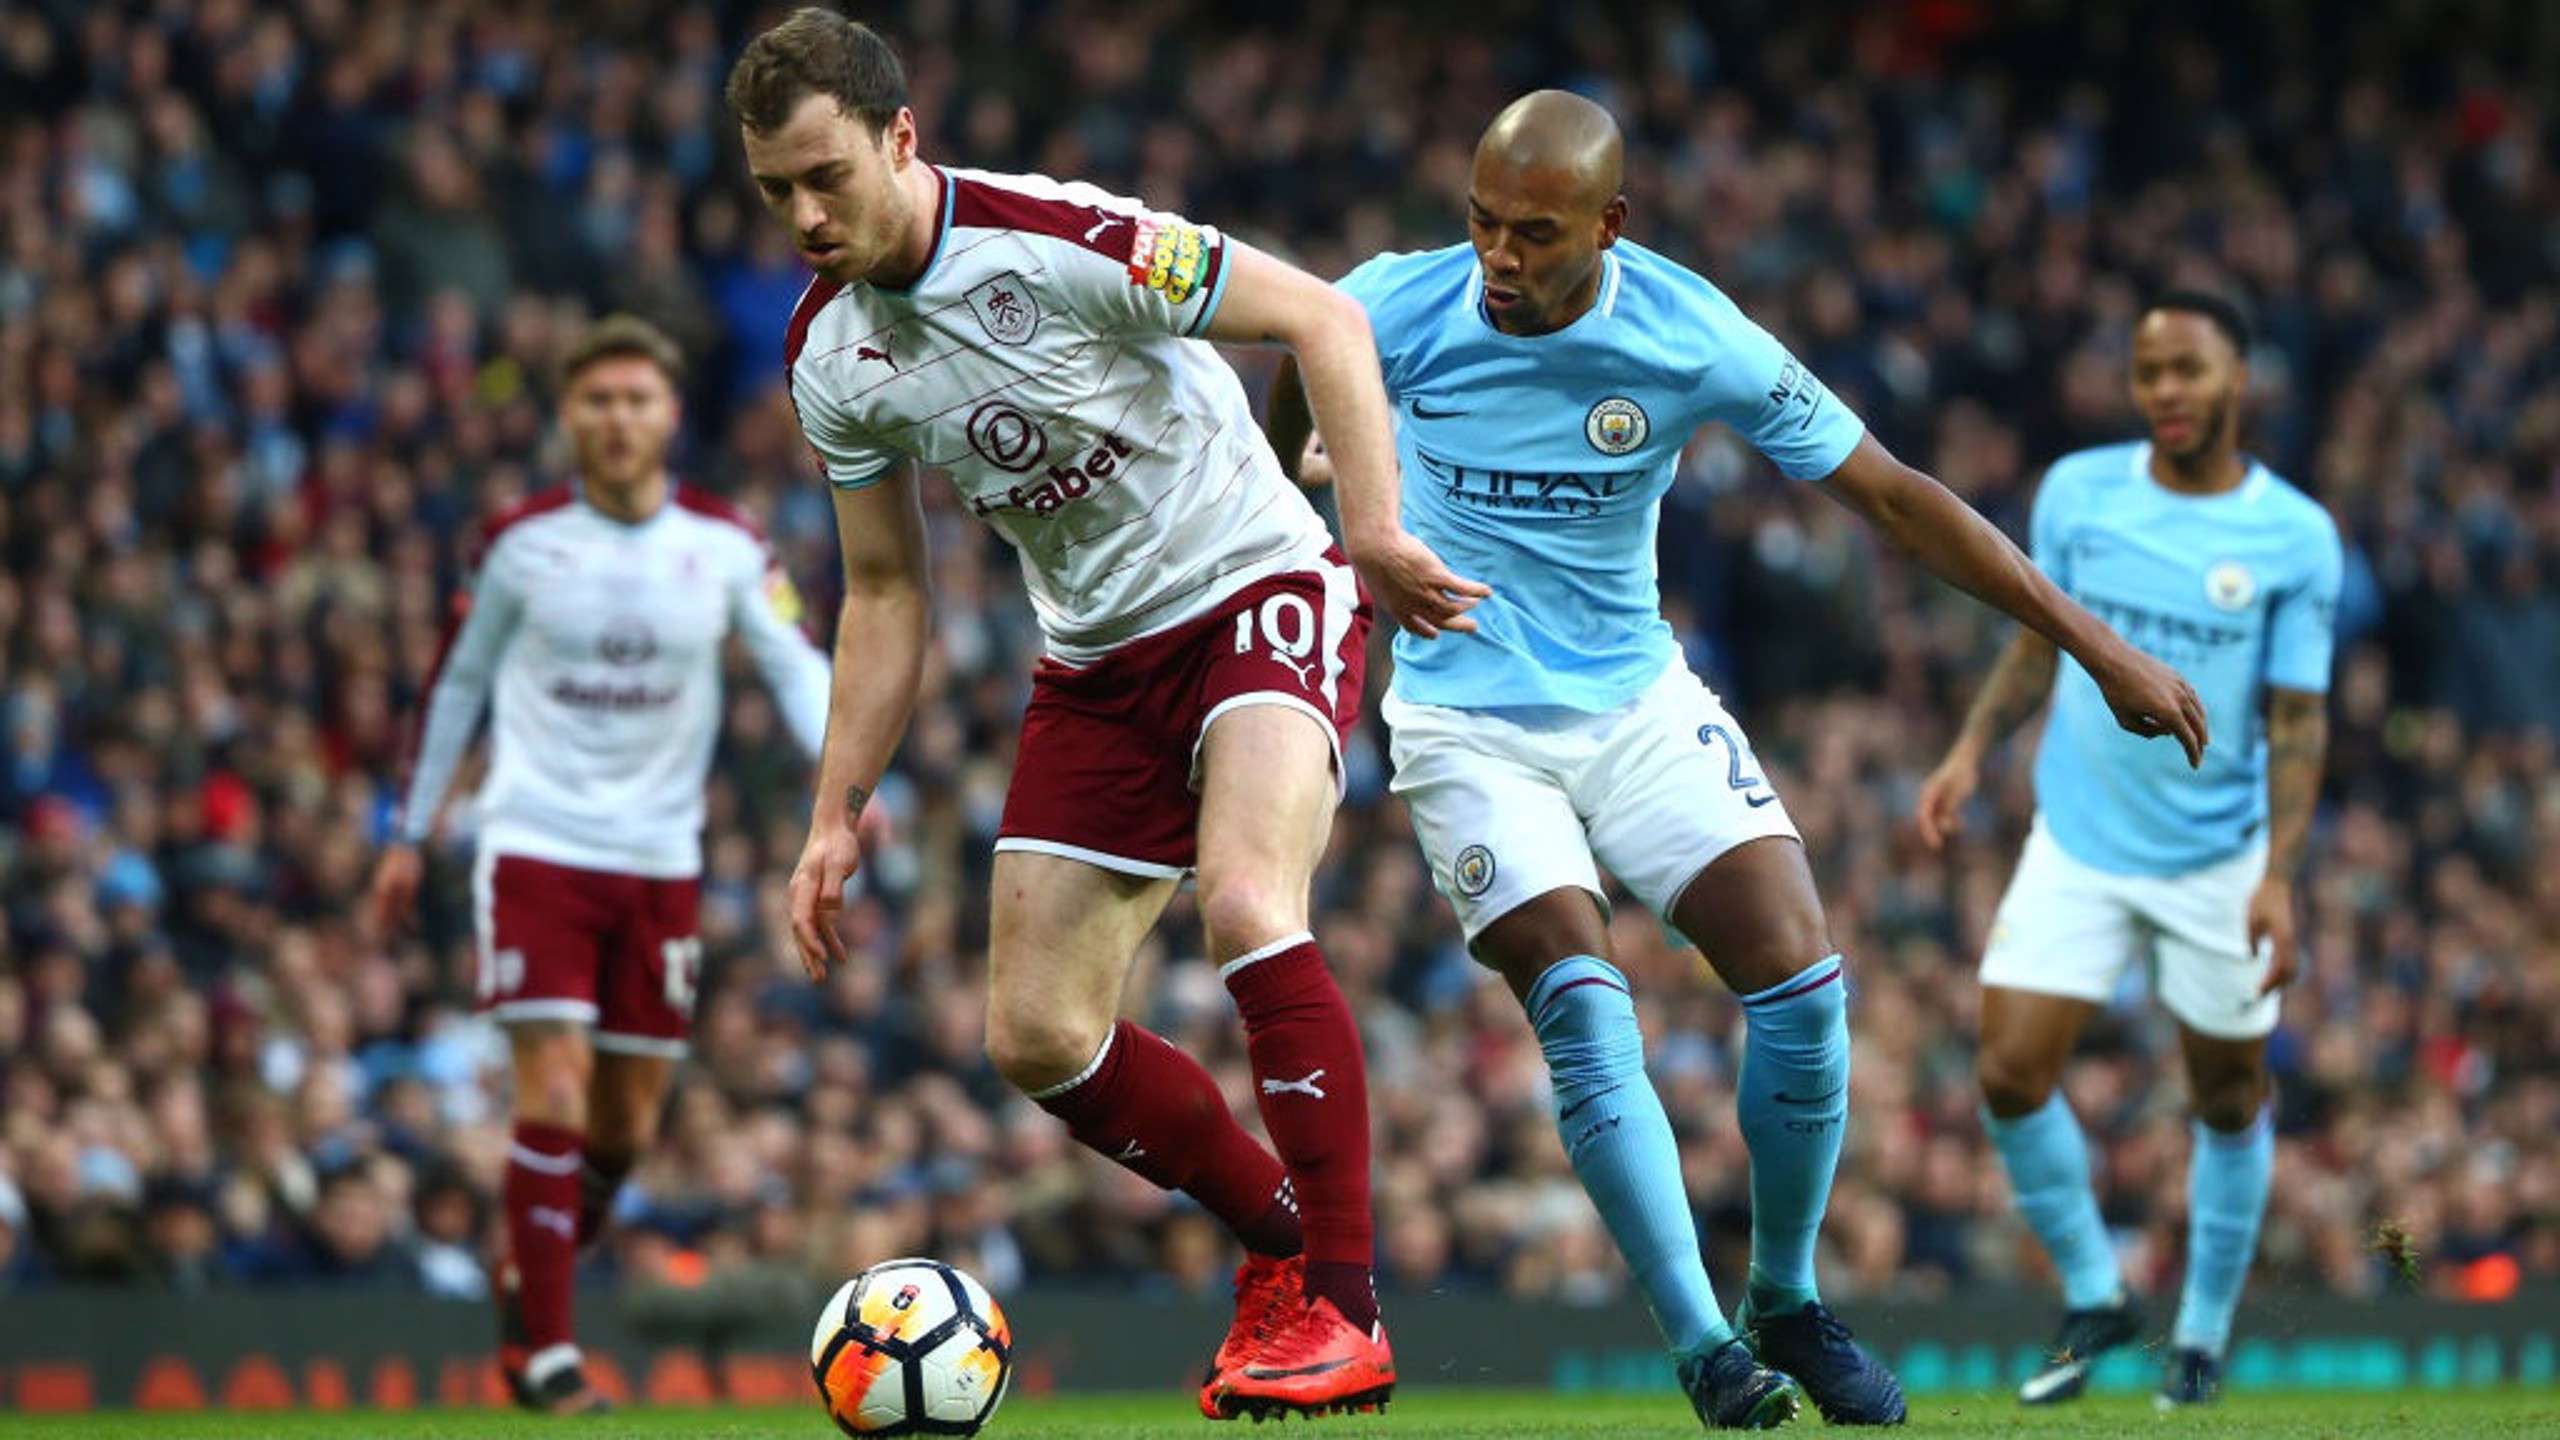 BATTLING: Fernandinho puts Ashley Barnes under pressure.